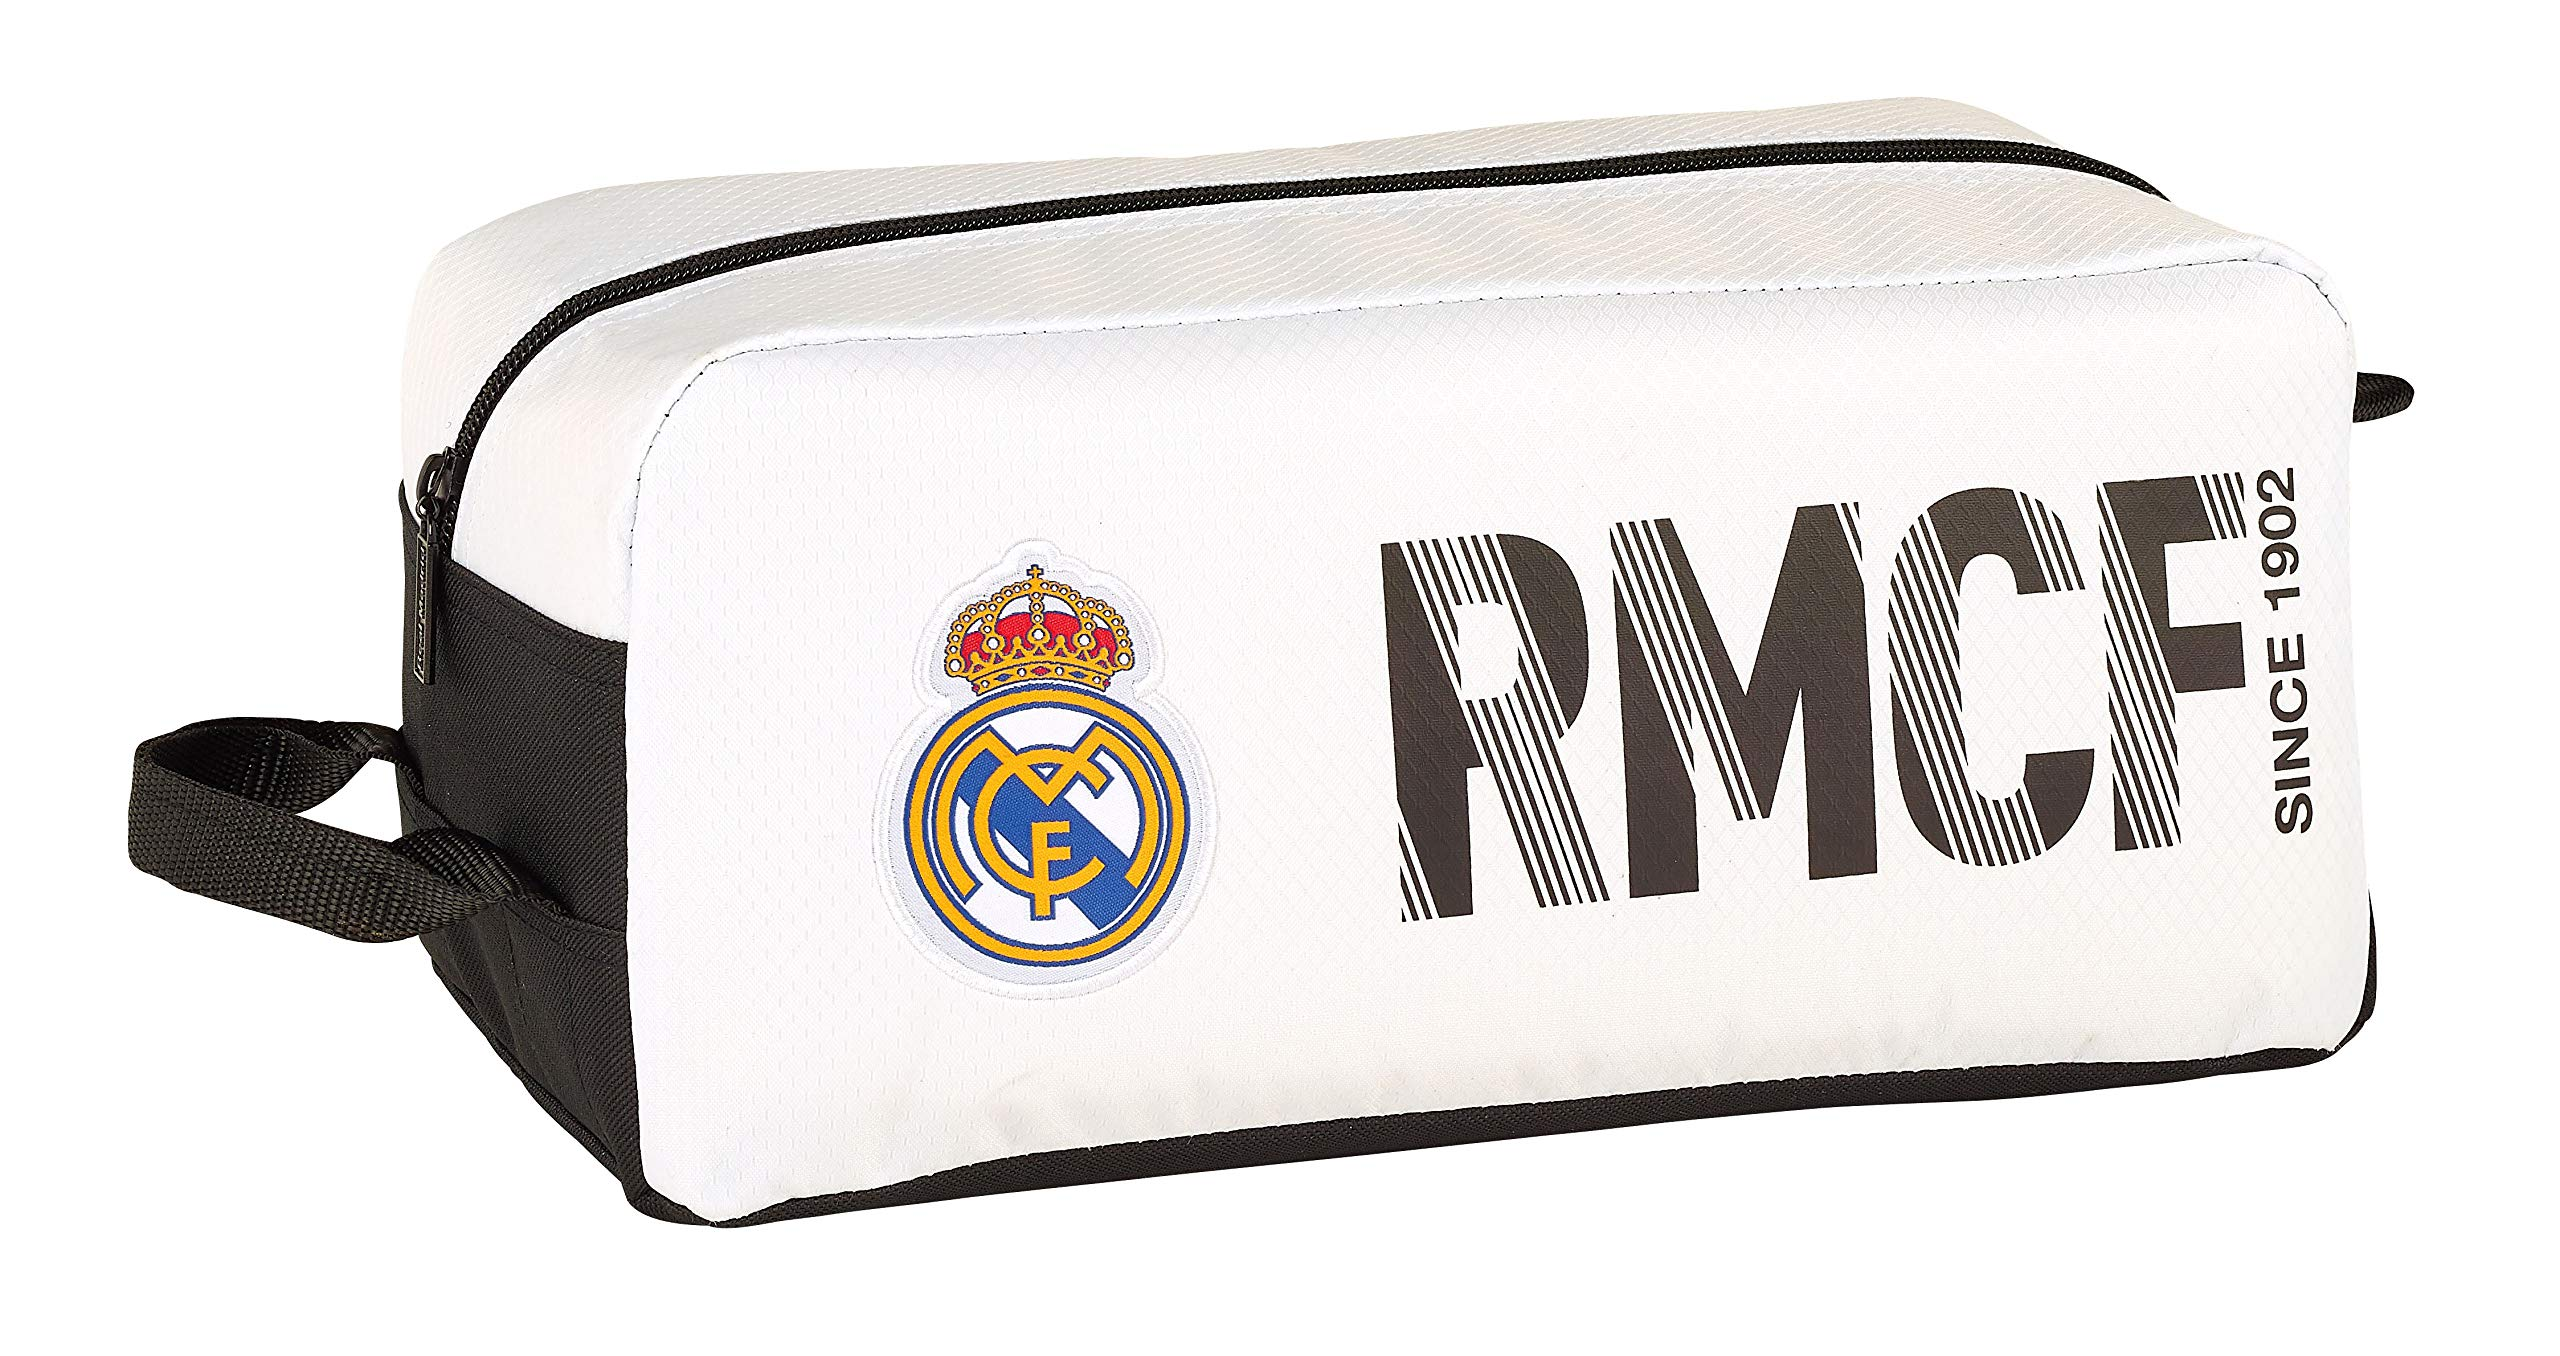 Real Madrid 811854440 2018 Bolsa para Zapatos 34 cm, Blanco